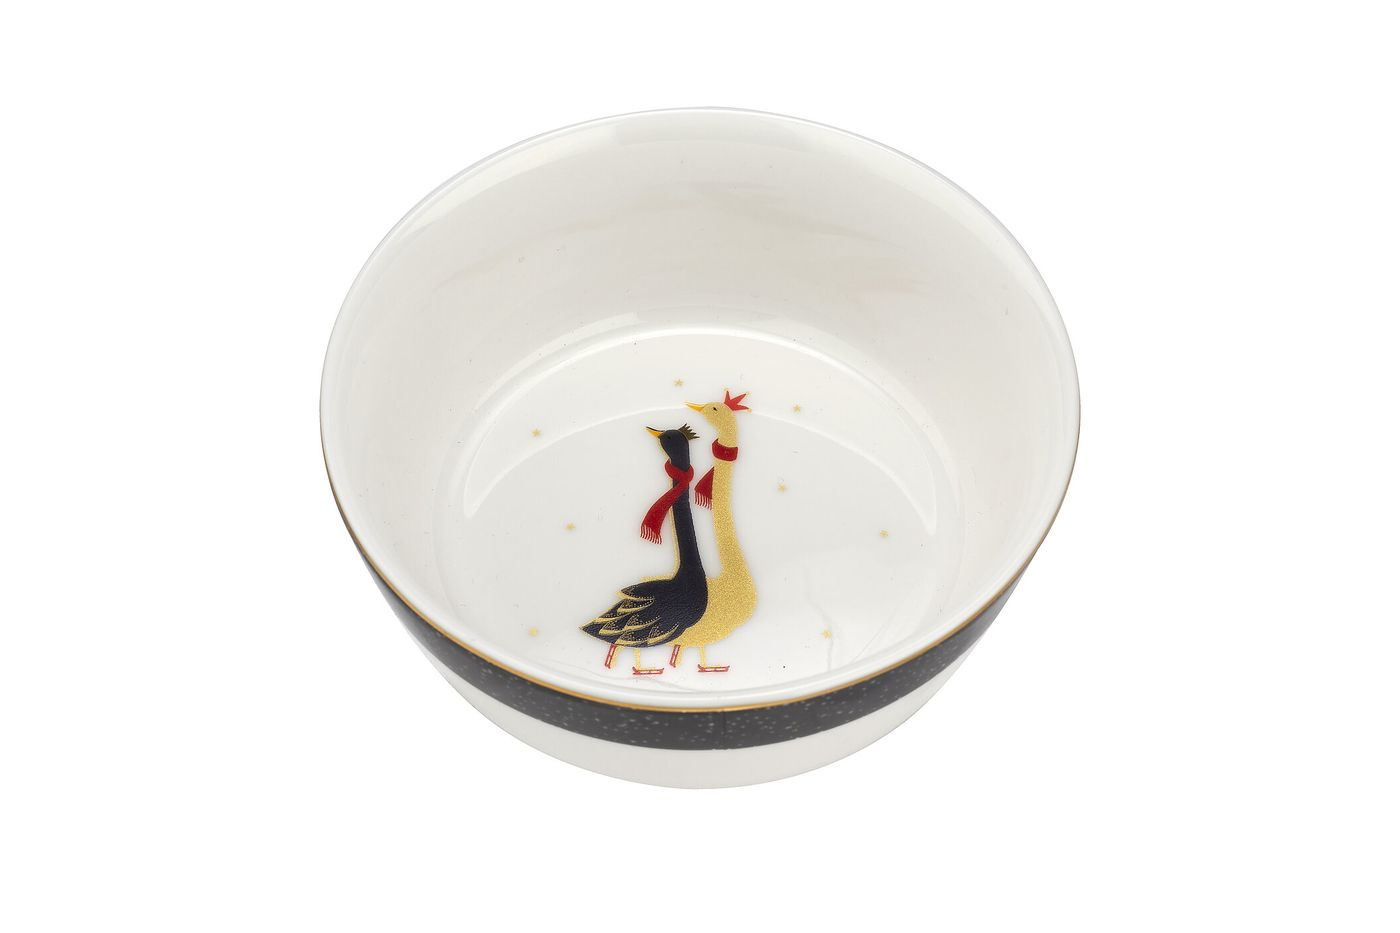 Sara Miller London for Portmeirion Geese Christmas Collection Set of 2 Bowls 10cm thumb 4